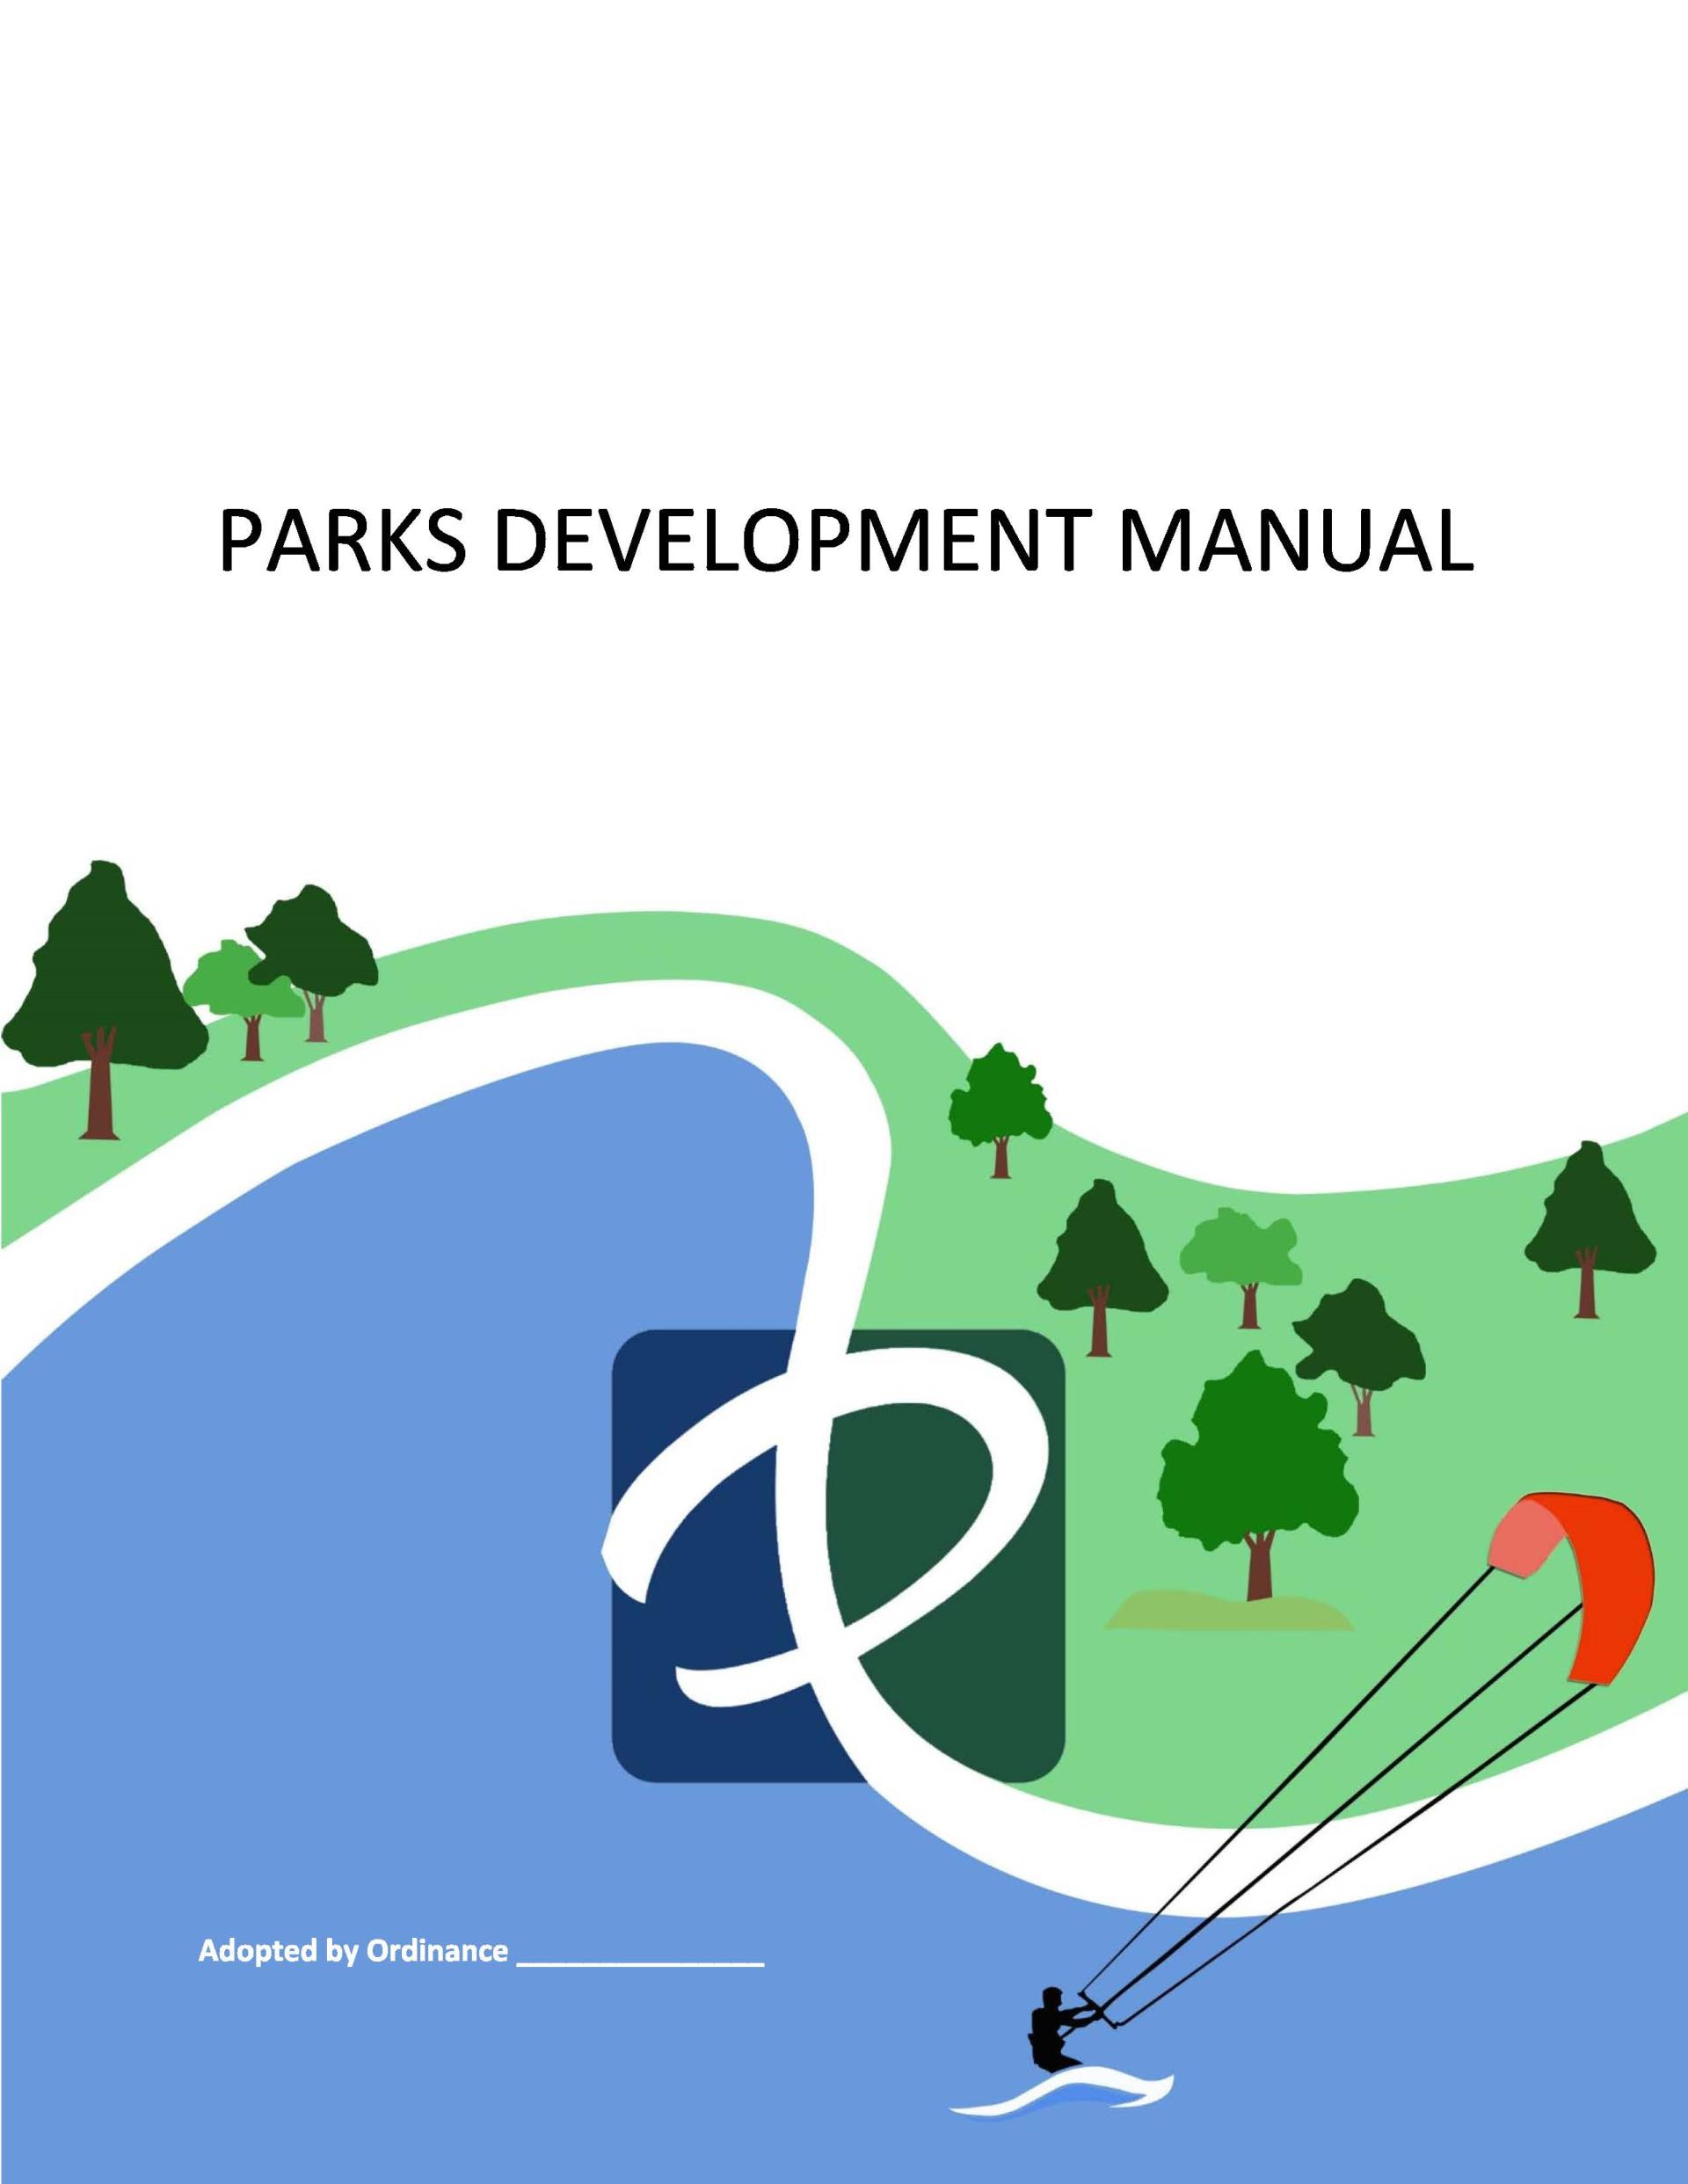 parks development manual cover